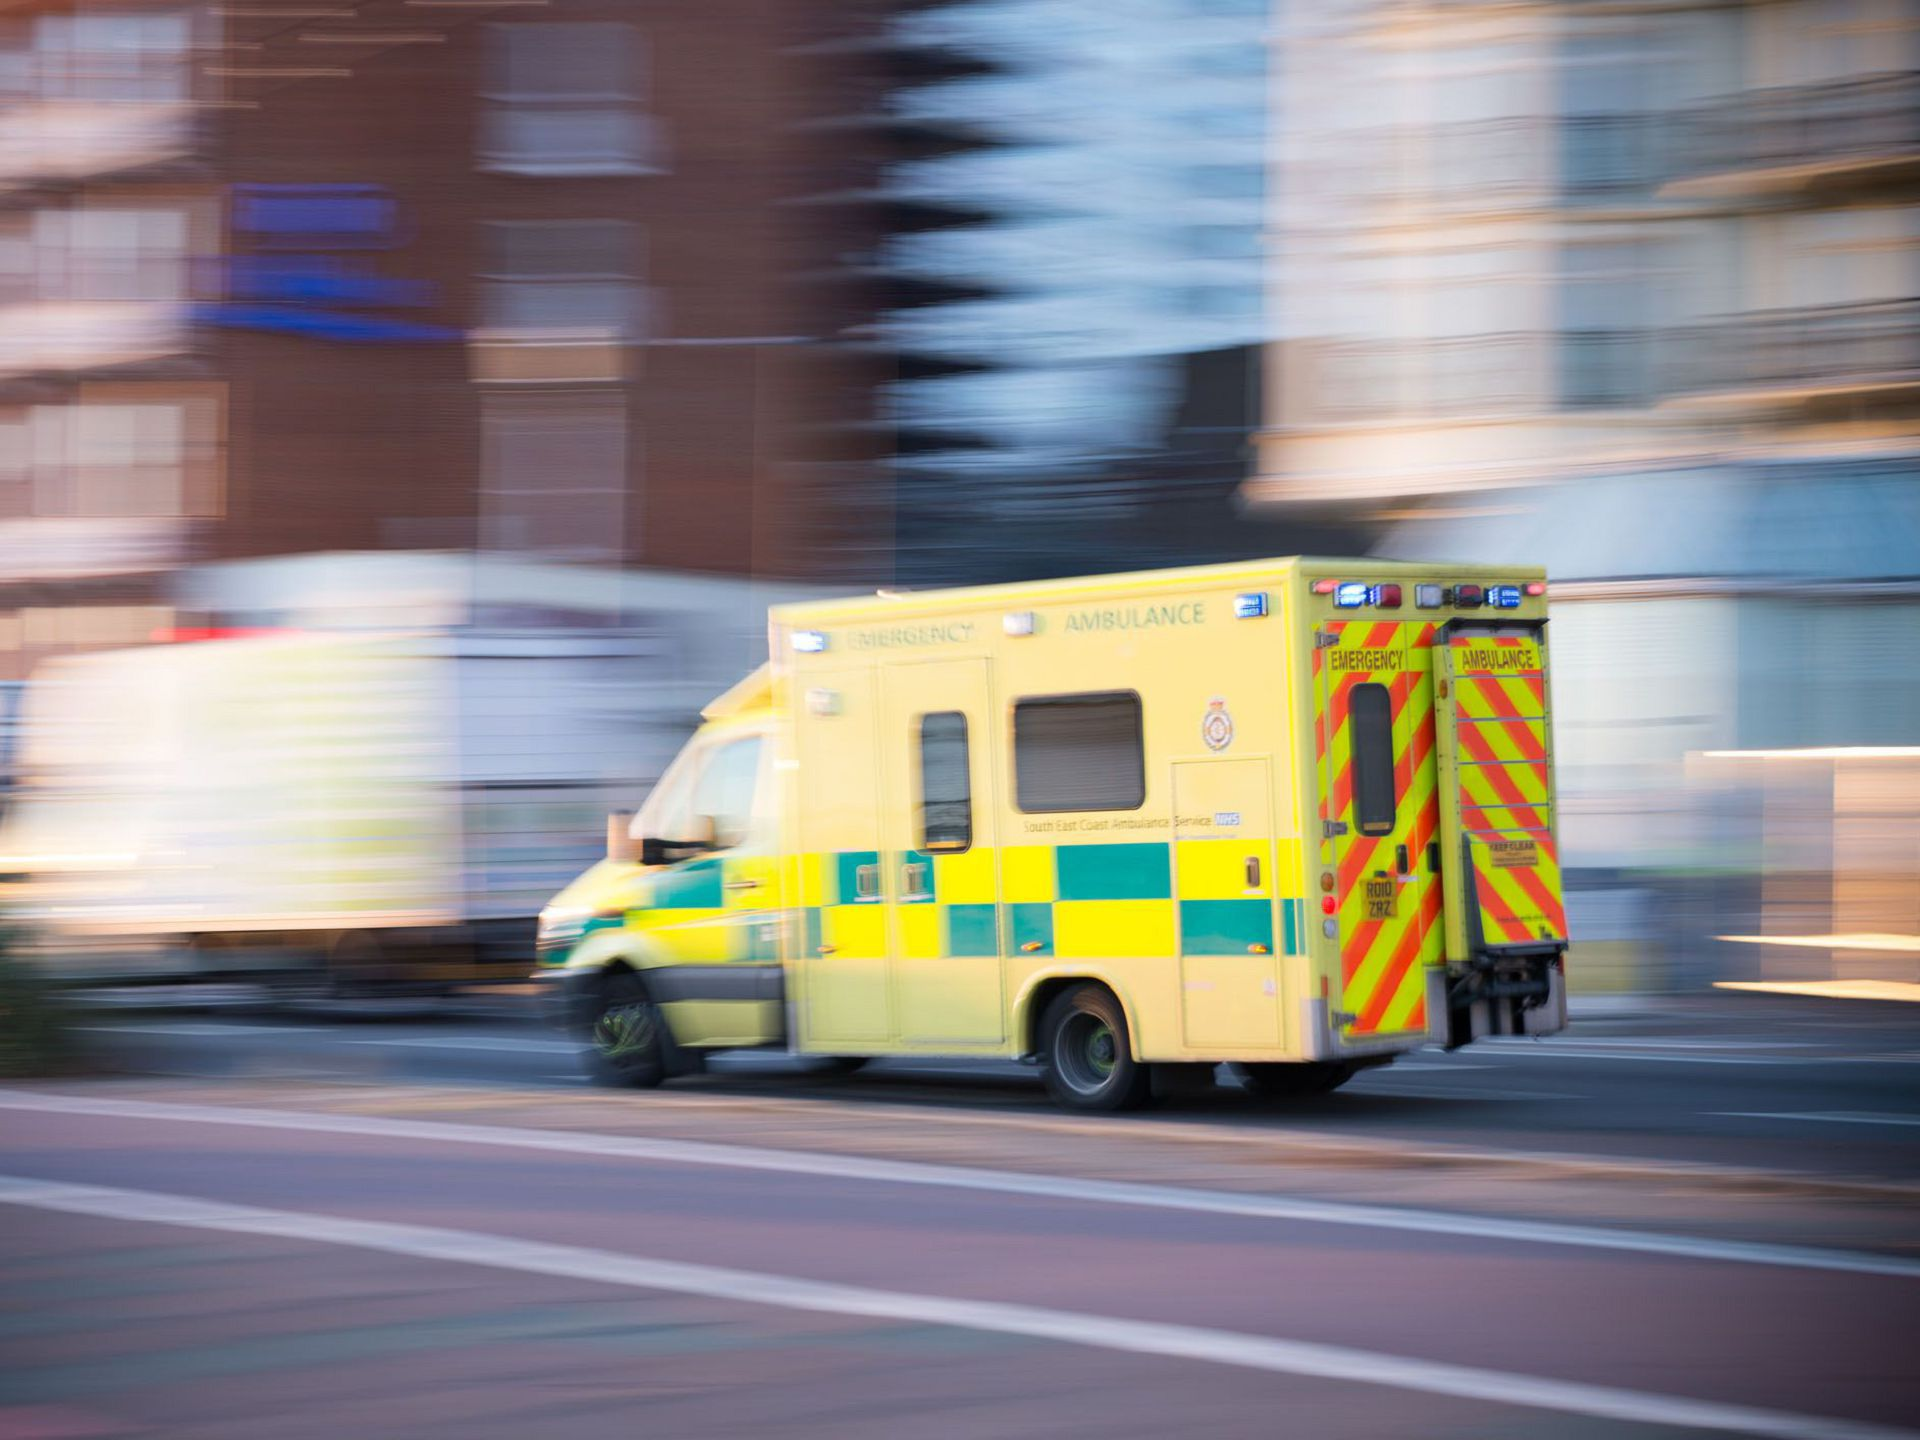 Emergency Ambulance Car In Brighton, UK, Motion Blur